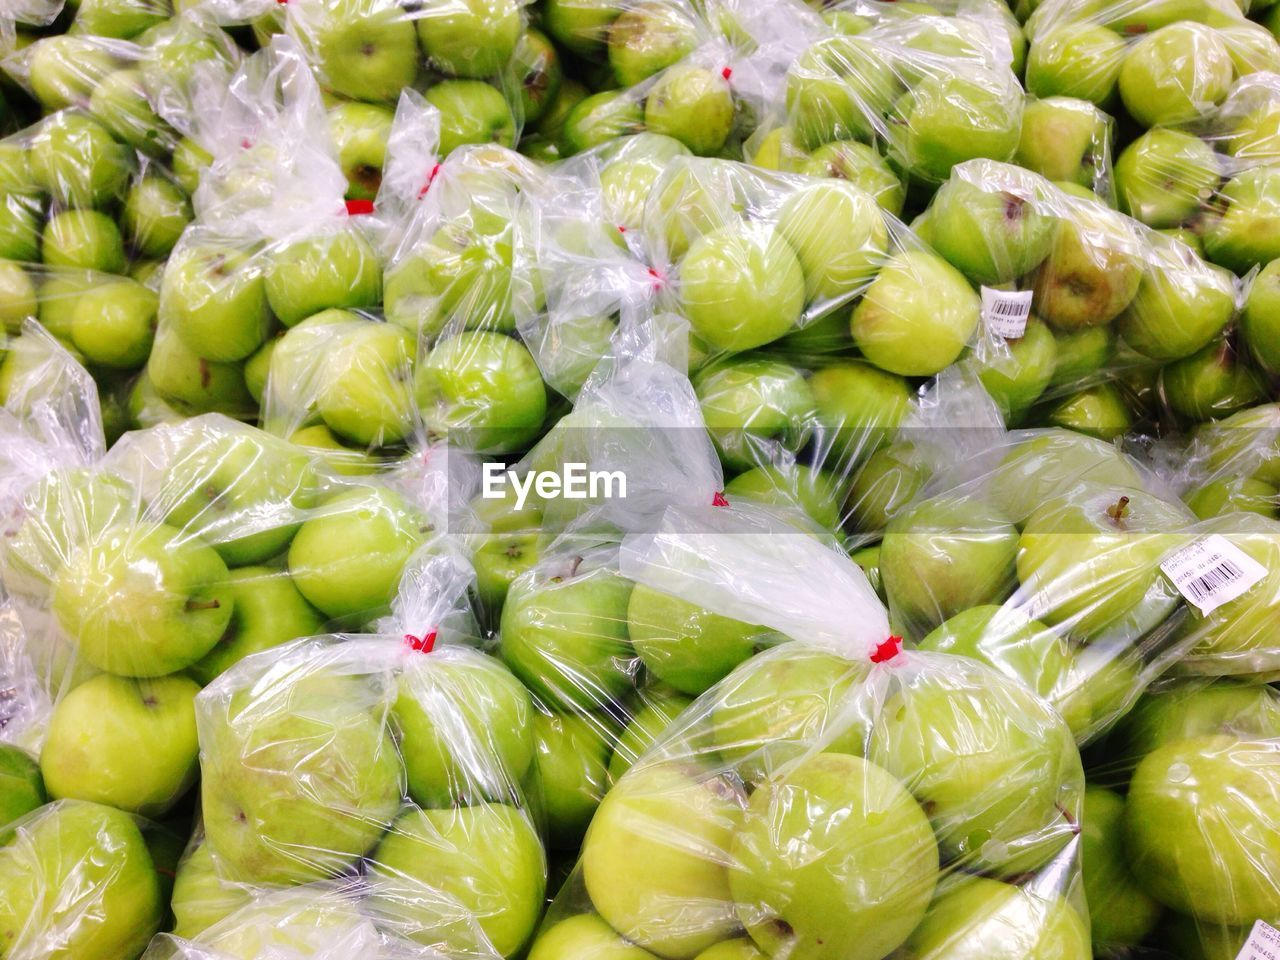 Full Frame Shot Of Granny Smith Apples Packed In Plastic At Market For Sale